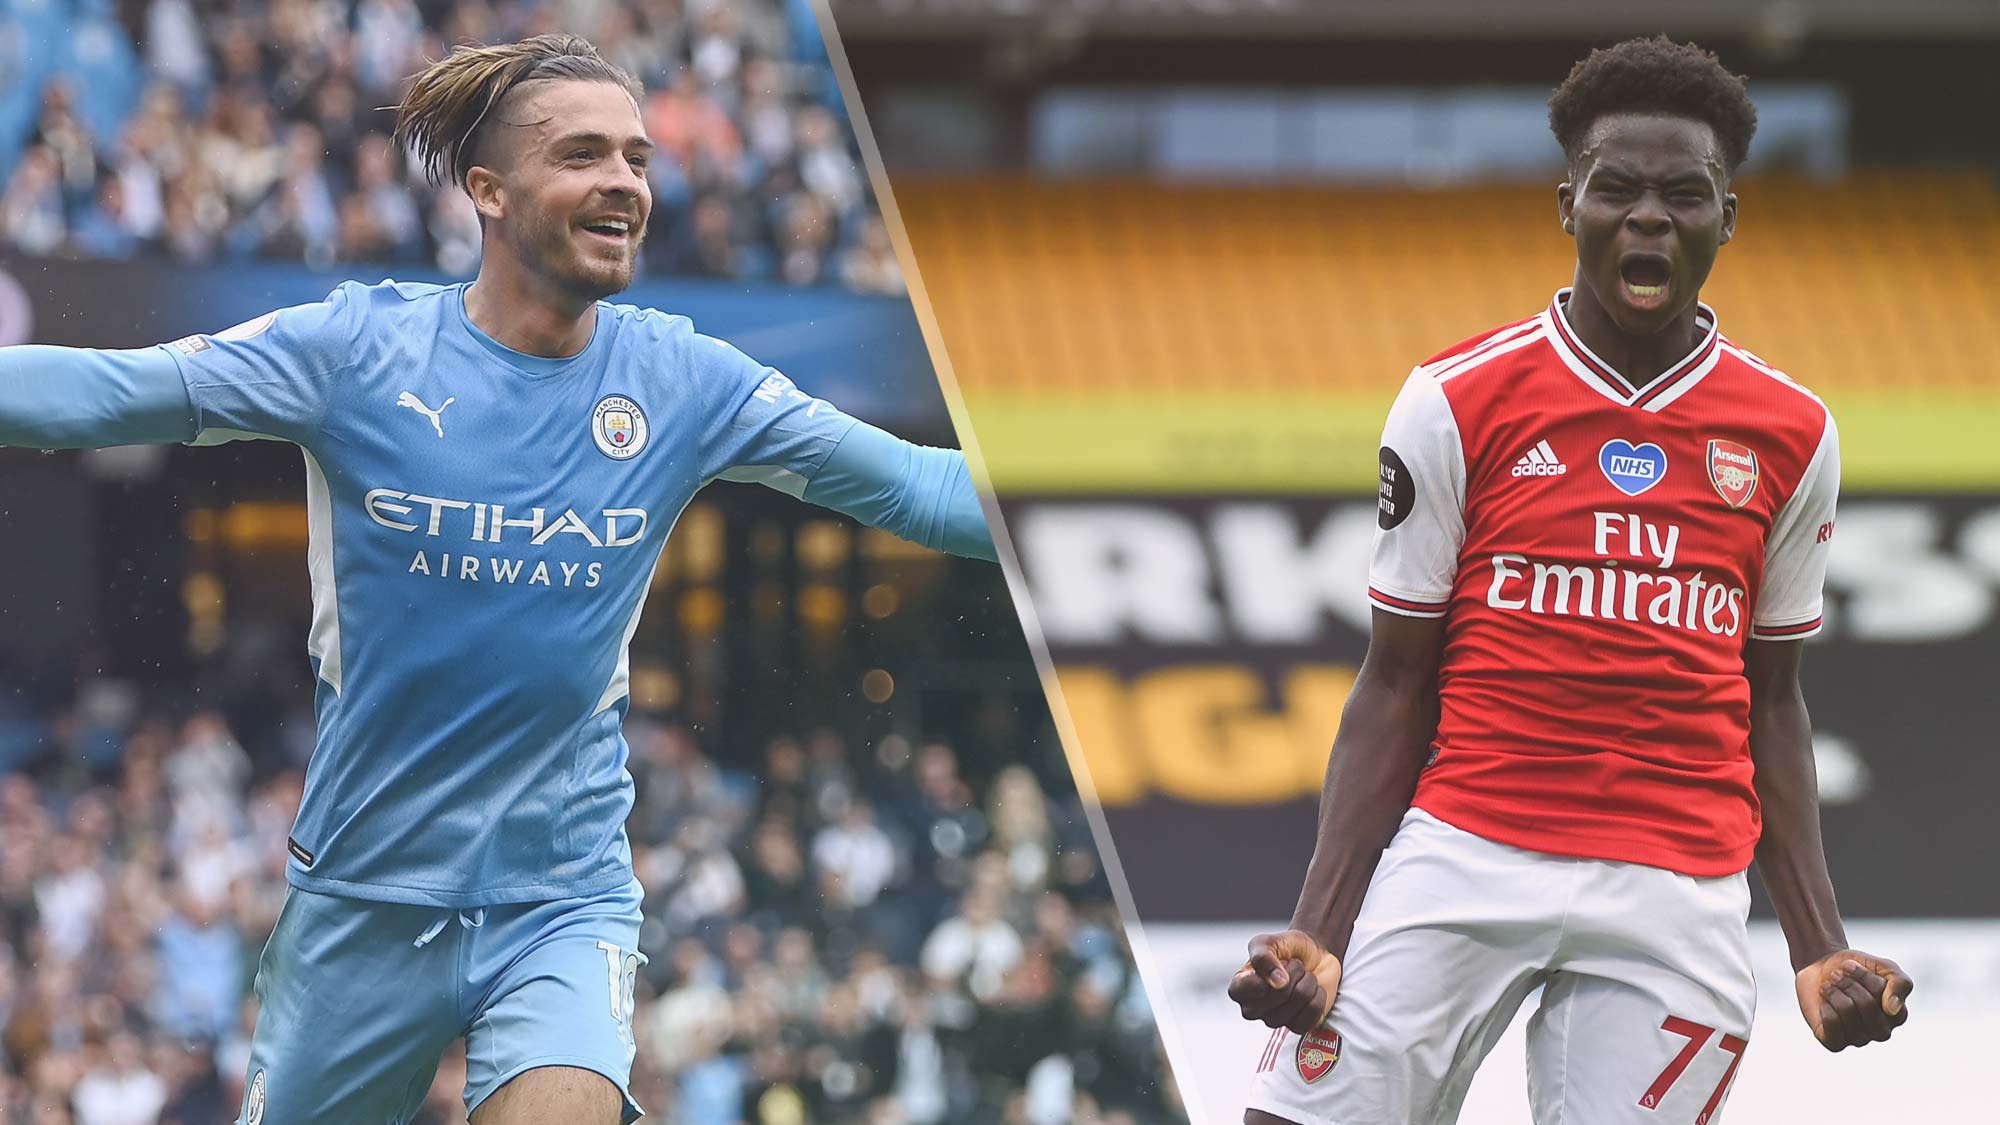 Manchester City vs Arsenal live stream — how to watch Premier League 21/22  game online   Tom's Guide